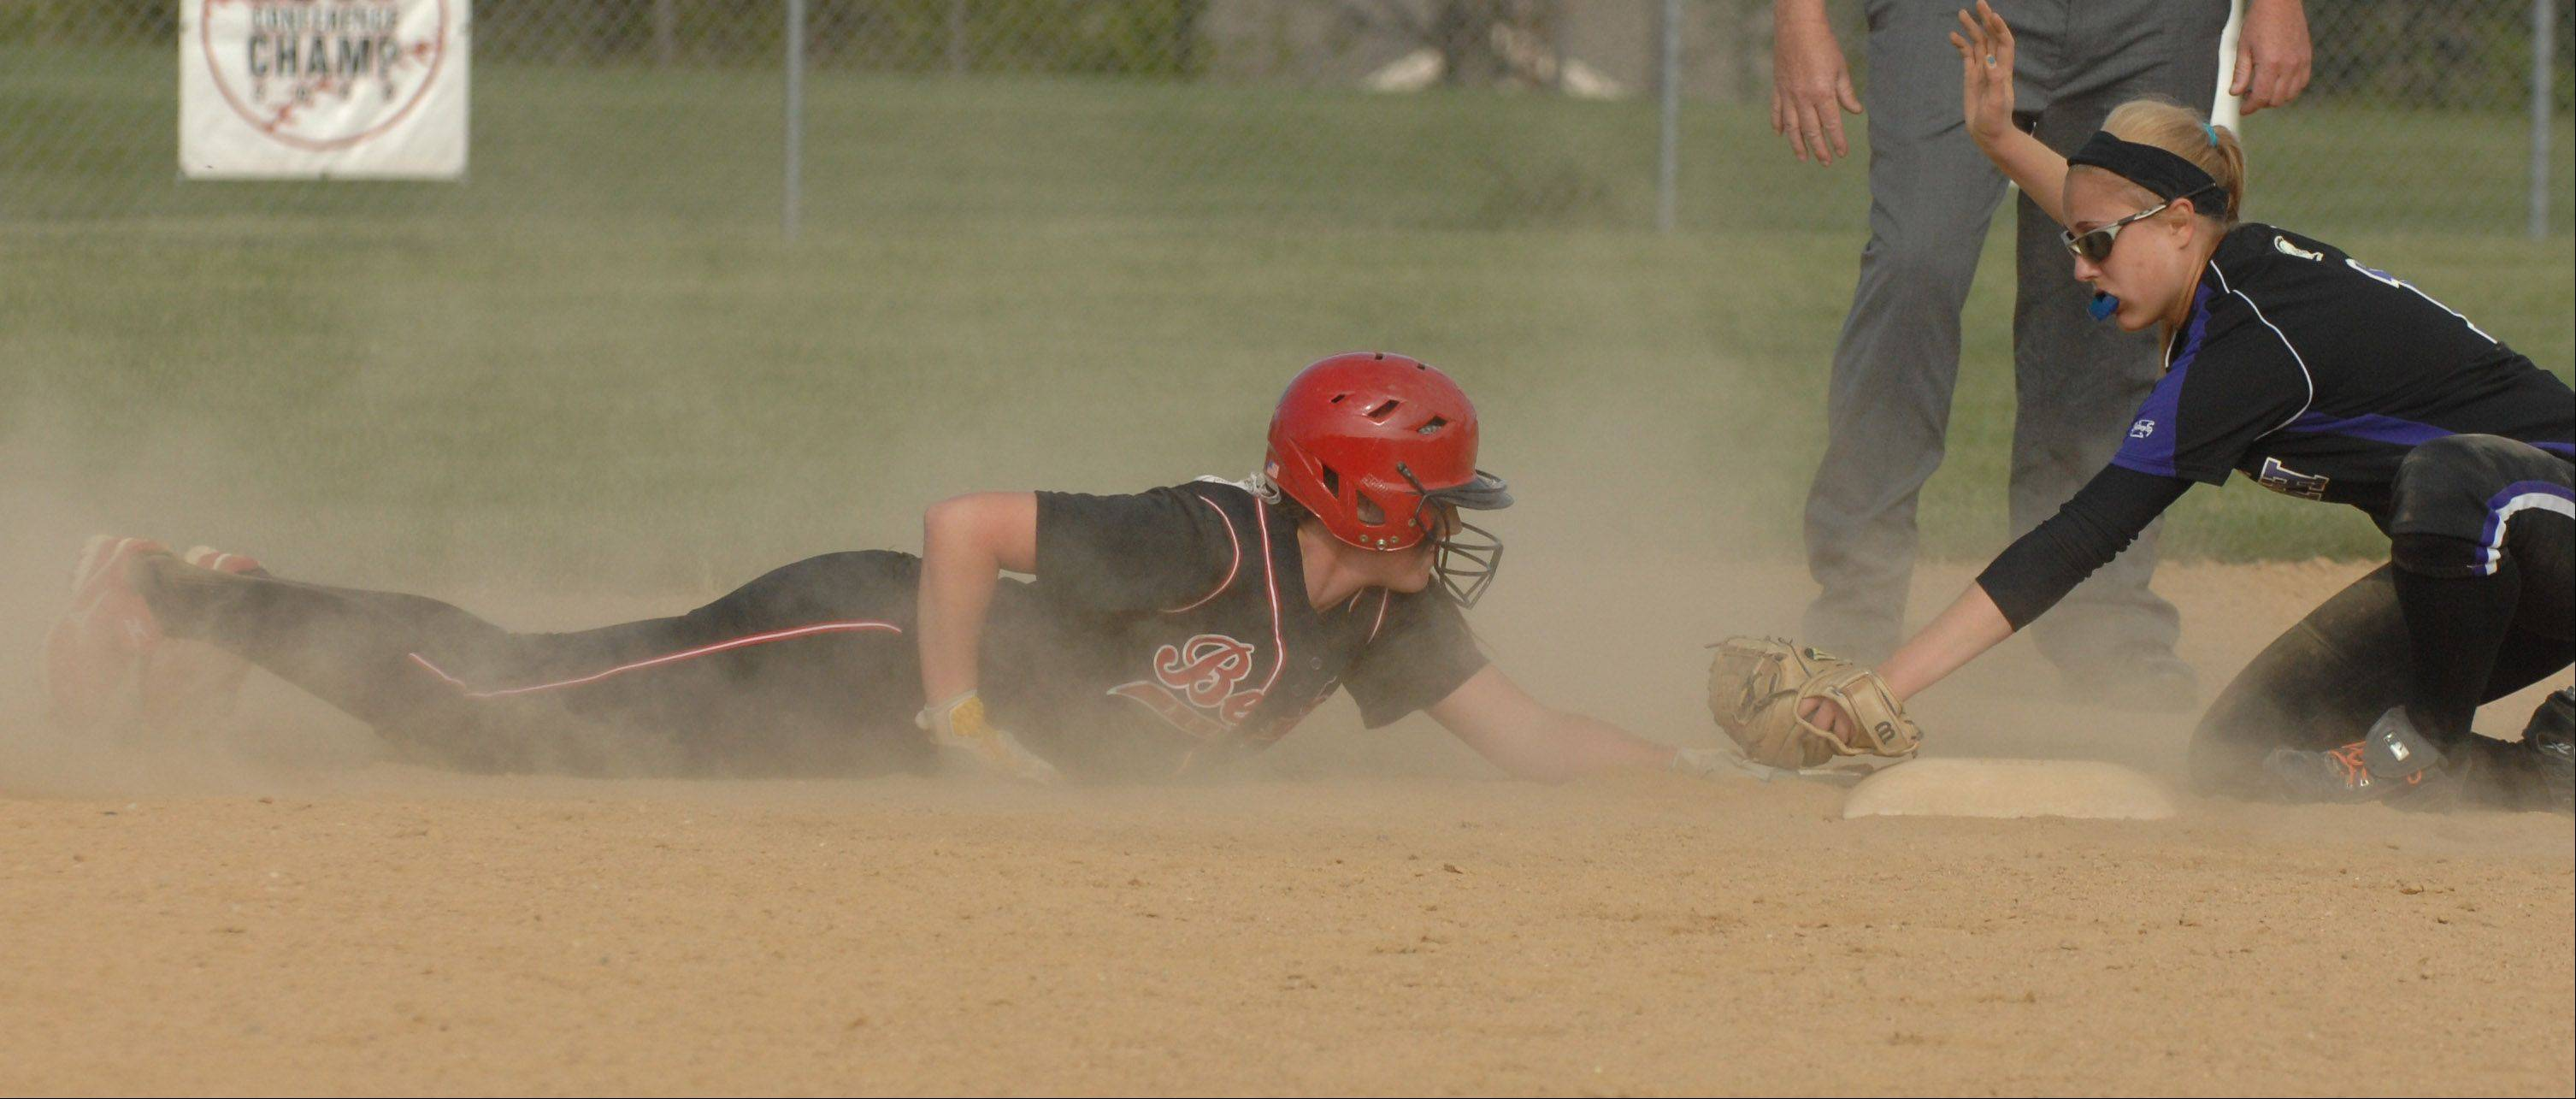 Maeve McGuire of Benet is tagged out by Maddie Wojciak of Downers Grove during the Downers Grove North at Benet softball game Tuesday.